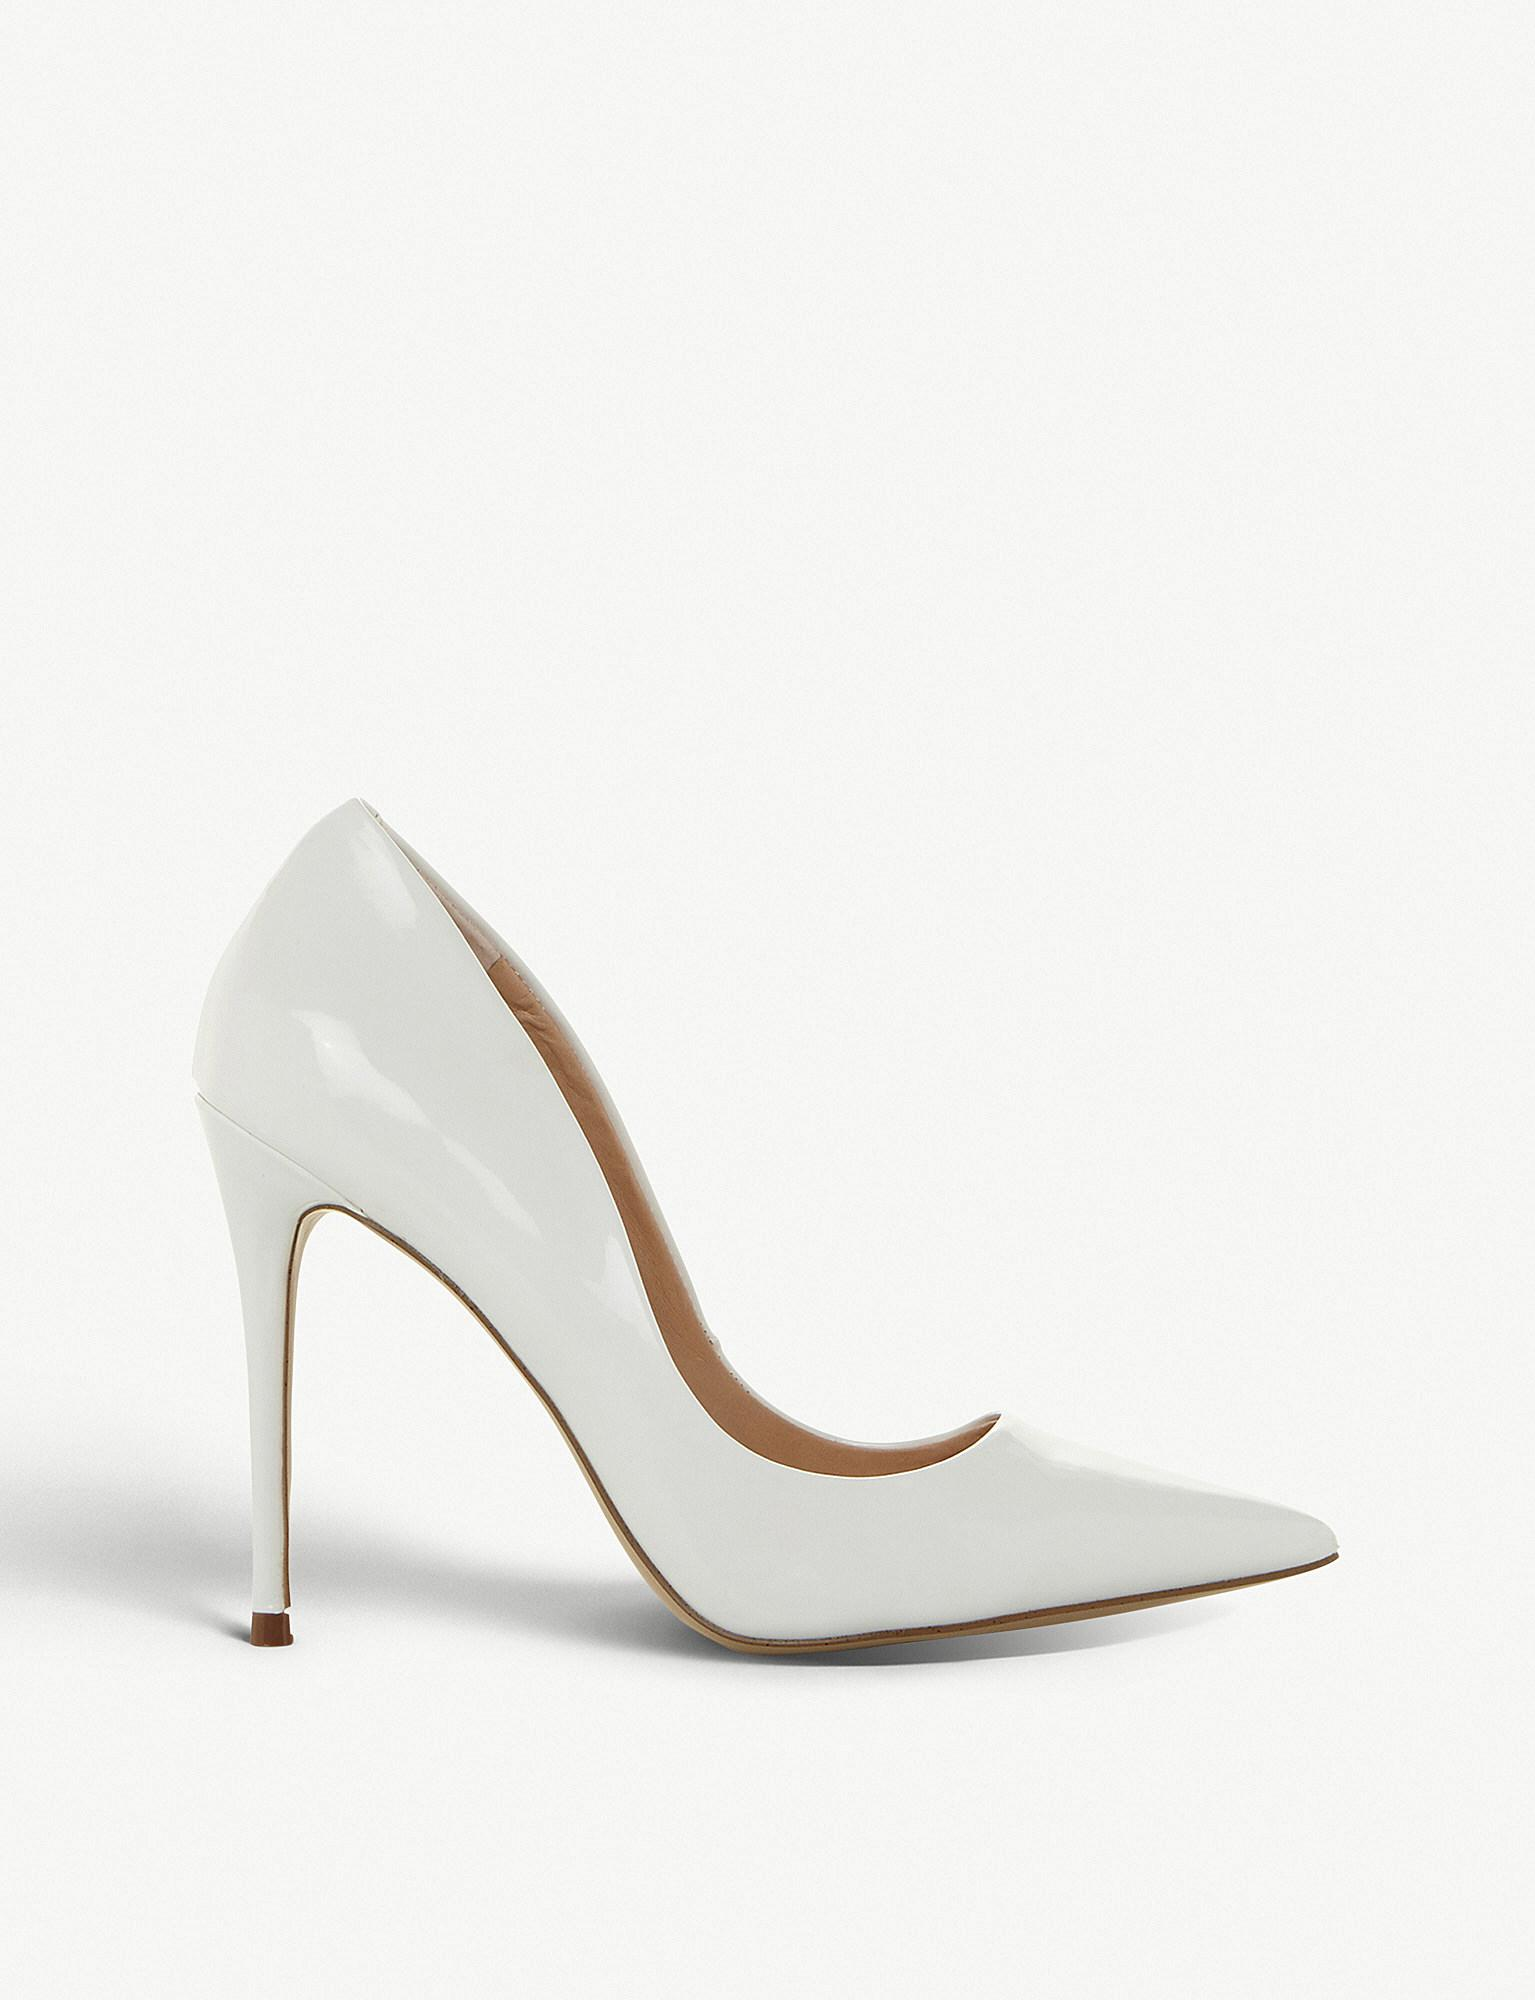 5ebd4c653a6d Steve Madden Daisie Pointed Toe Stiletto Heel Courts in White - Lyst